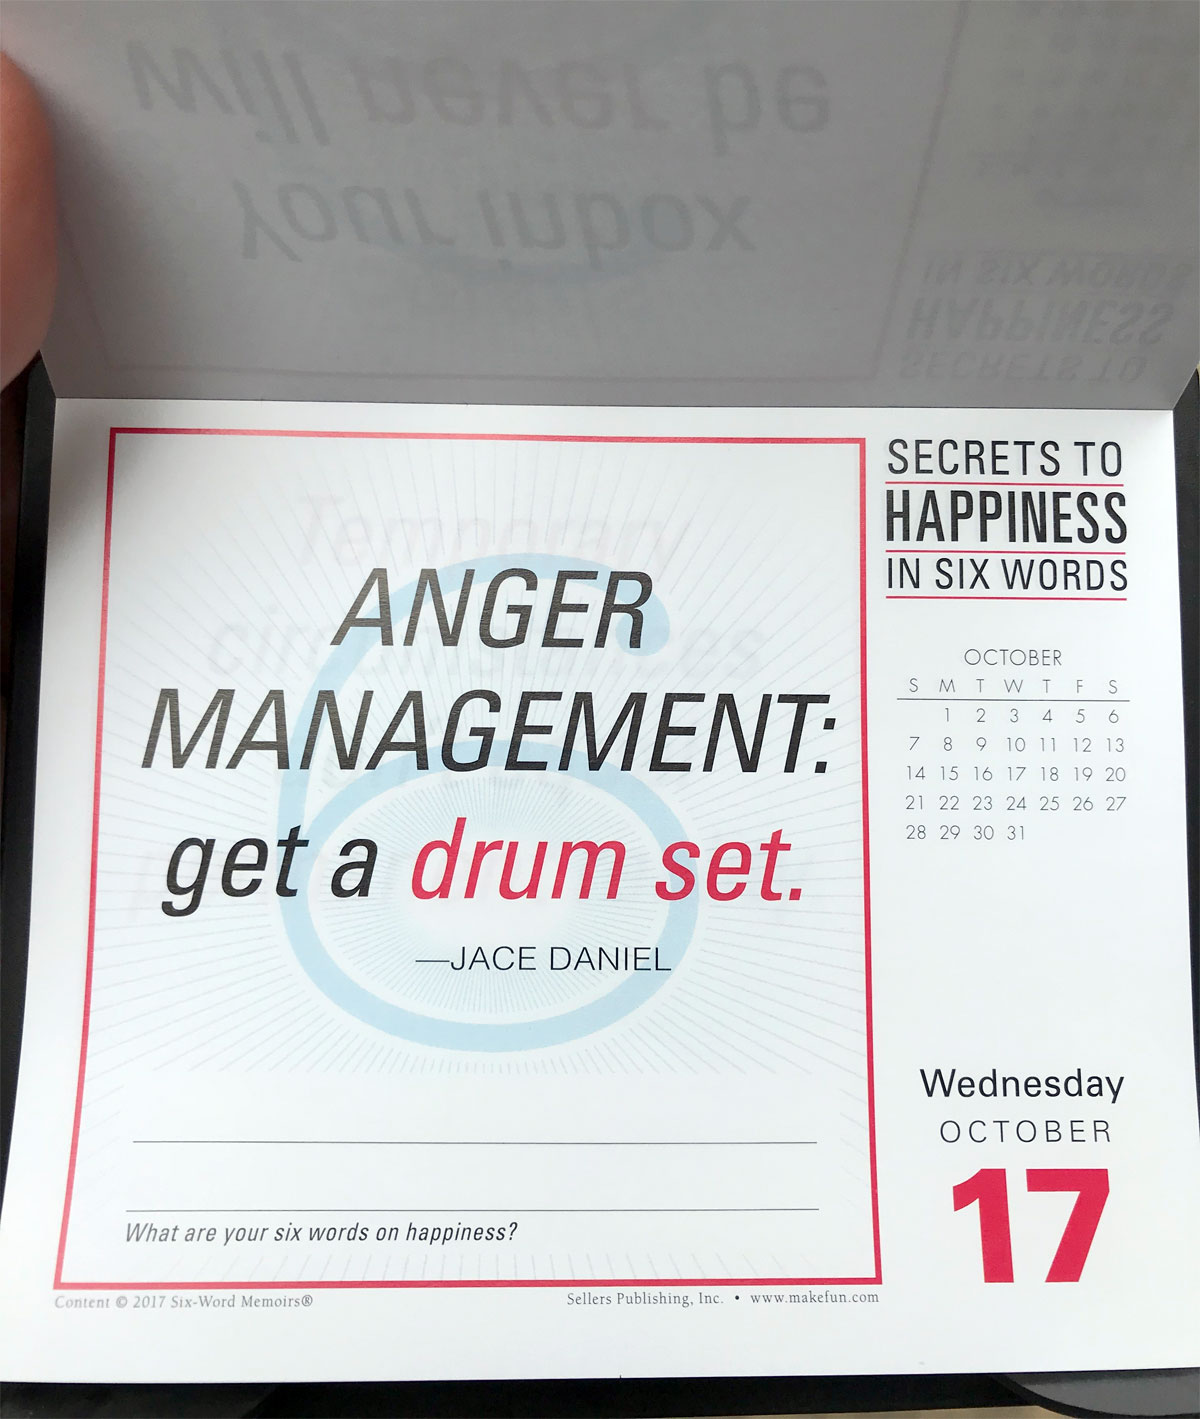 ANGER MANAGEMENT: Get a drum set